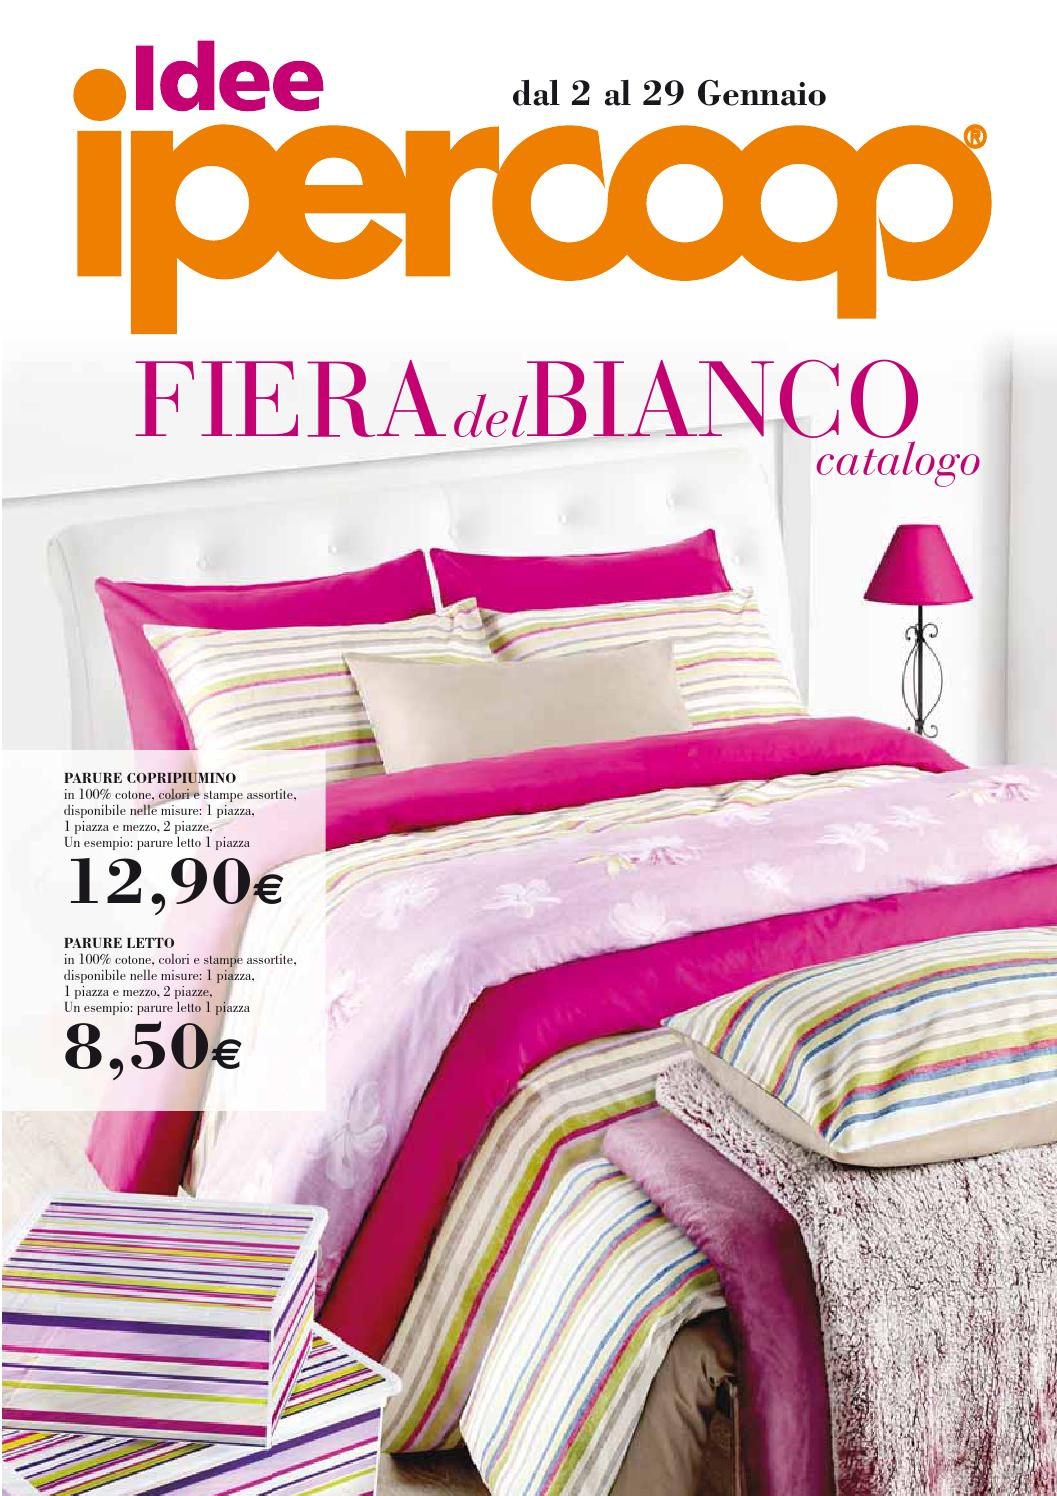 Parure Letto Ipercoop Tirreno 20 2 By E Offerte Issuu